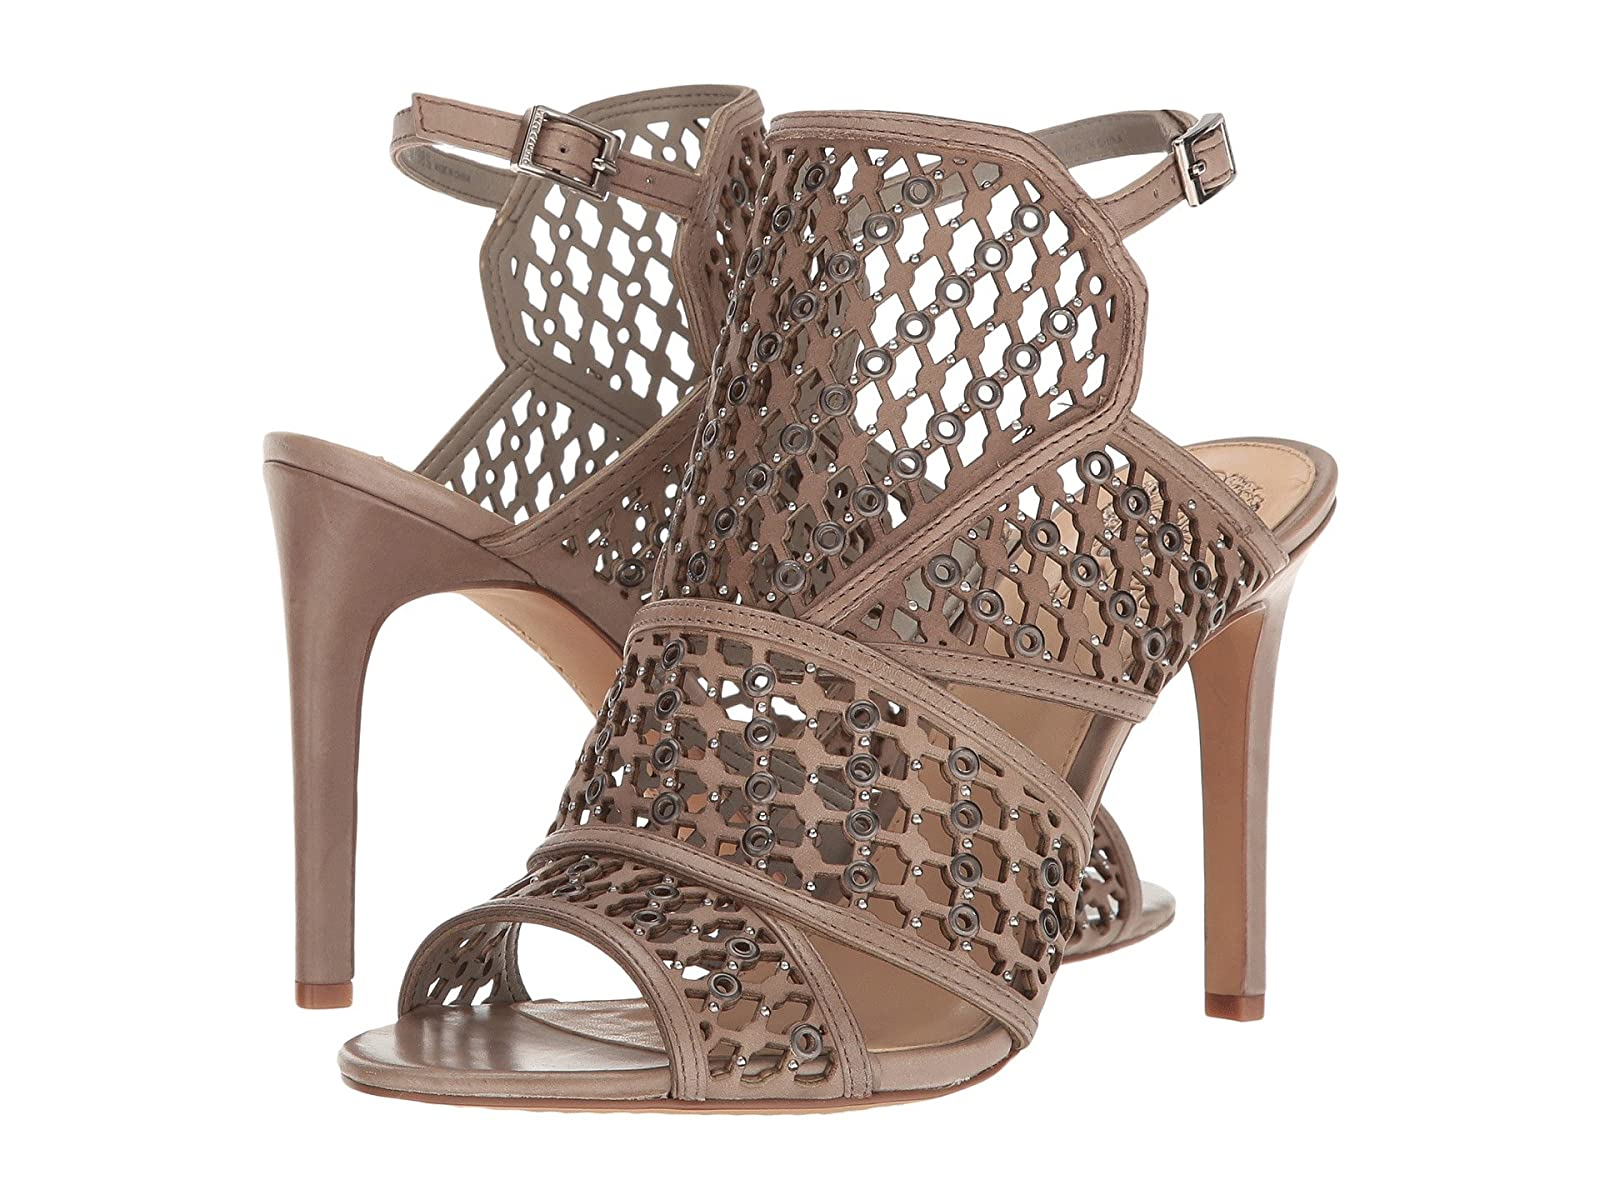 Vince Camuto KorthinaCheap and distinctive eye-catching shoes